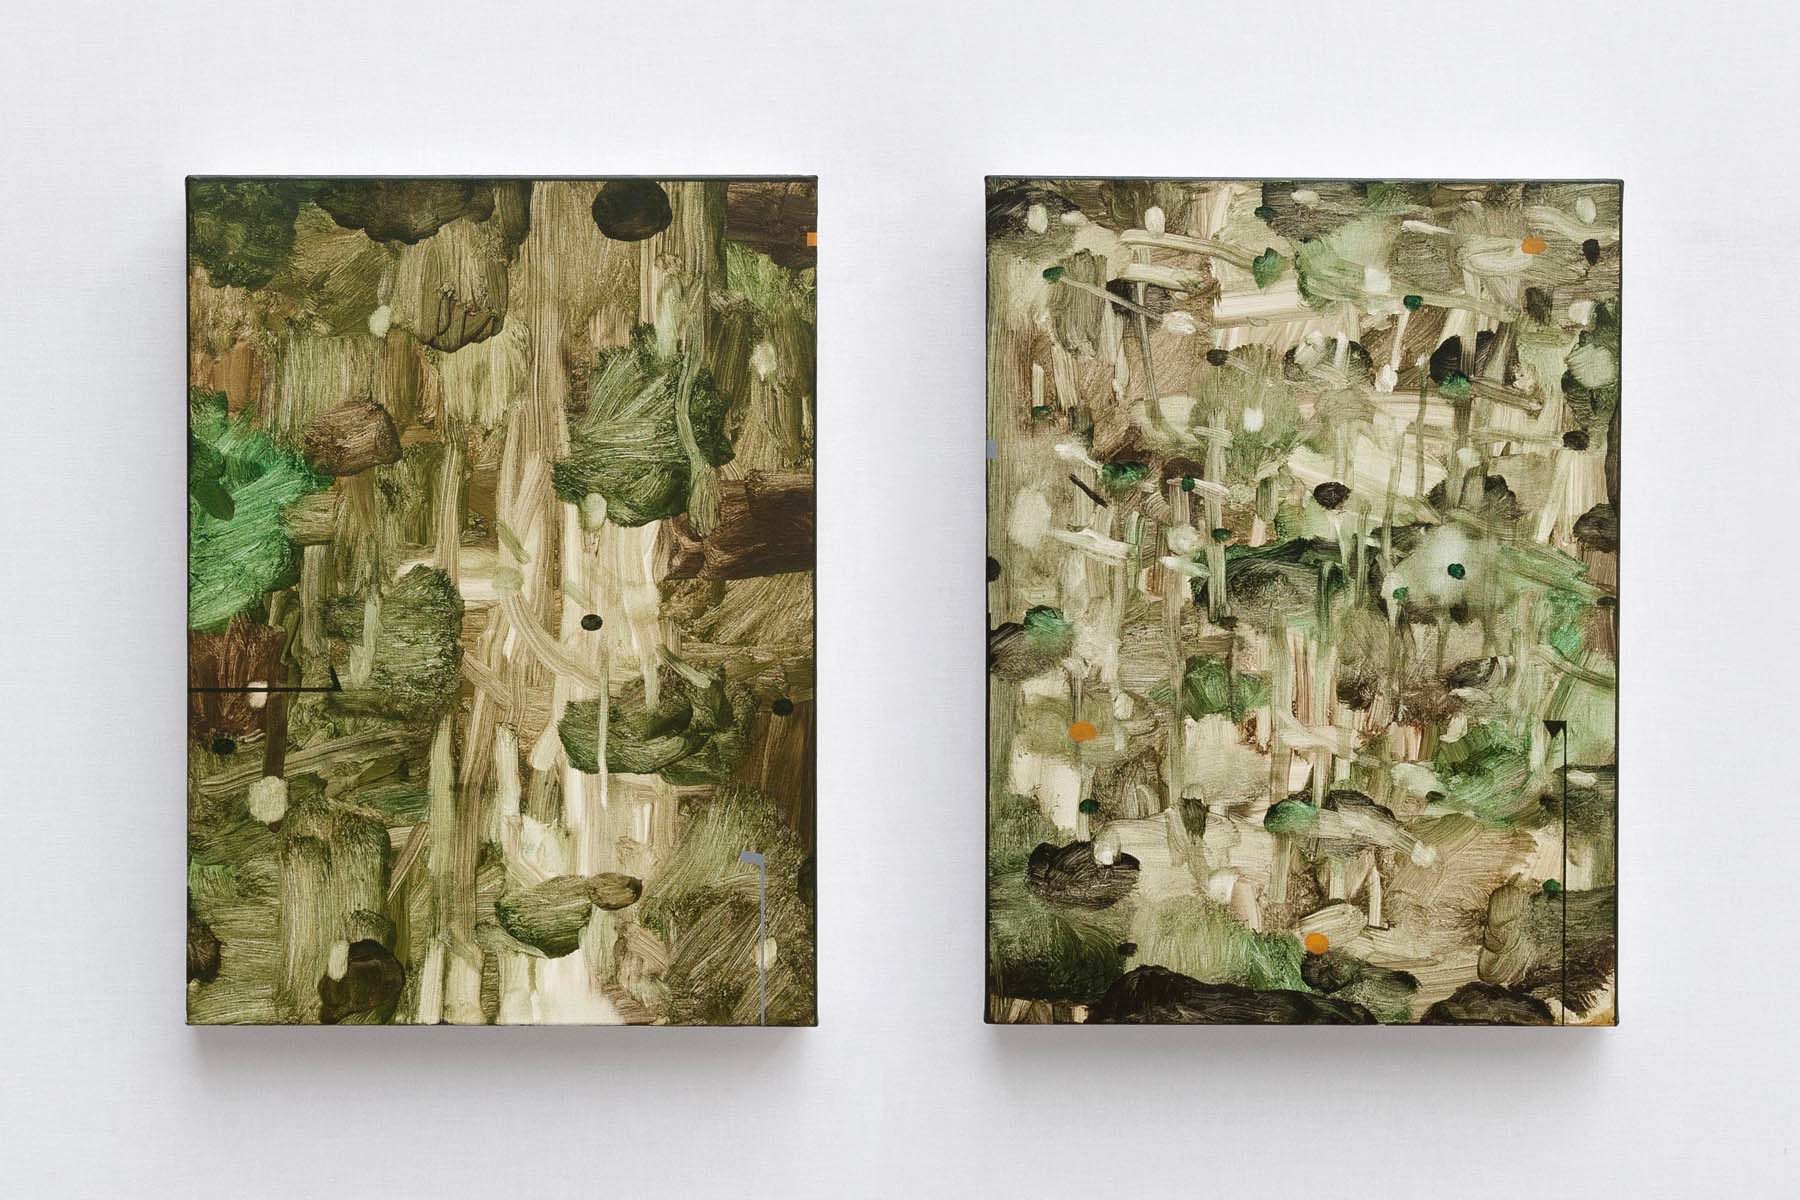 Mirko Baricchi, Selva #16 and #17, 2018, oil on canvas, 40 x 80 cm each